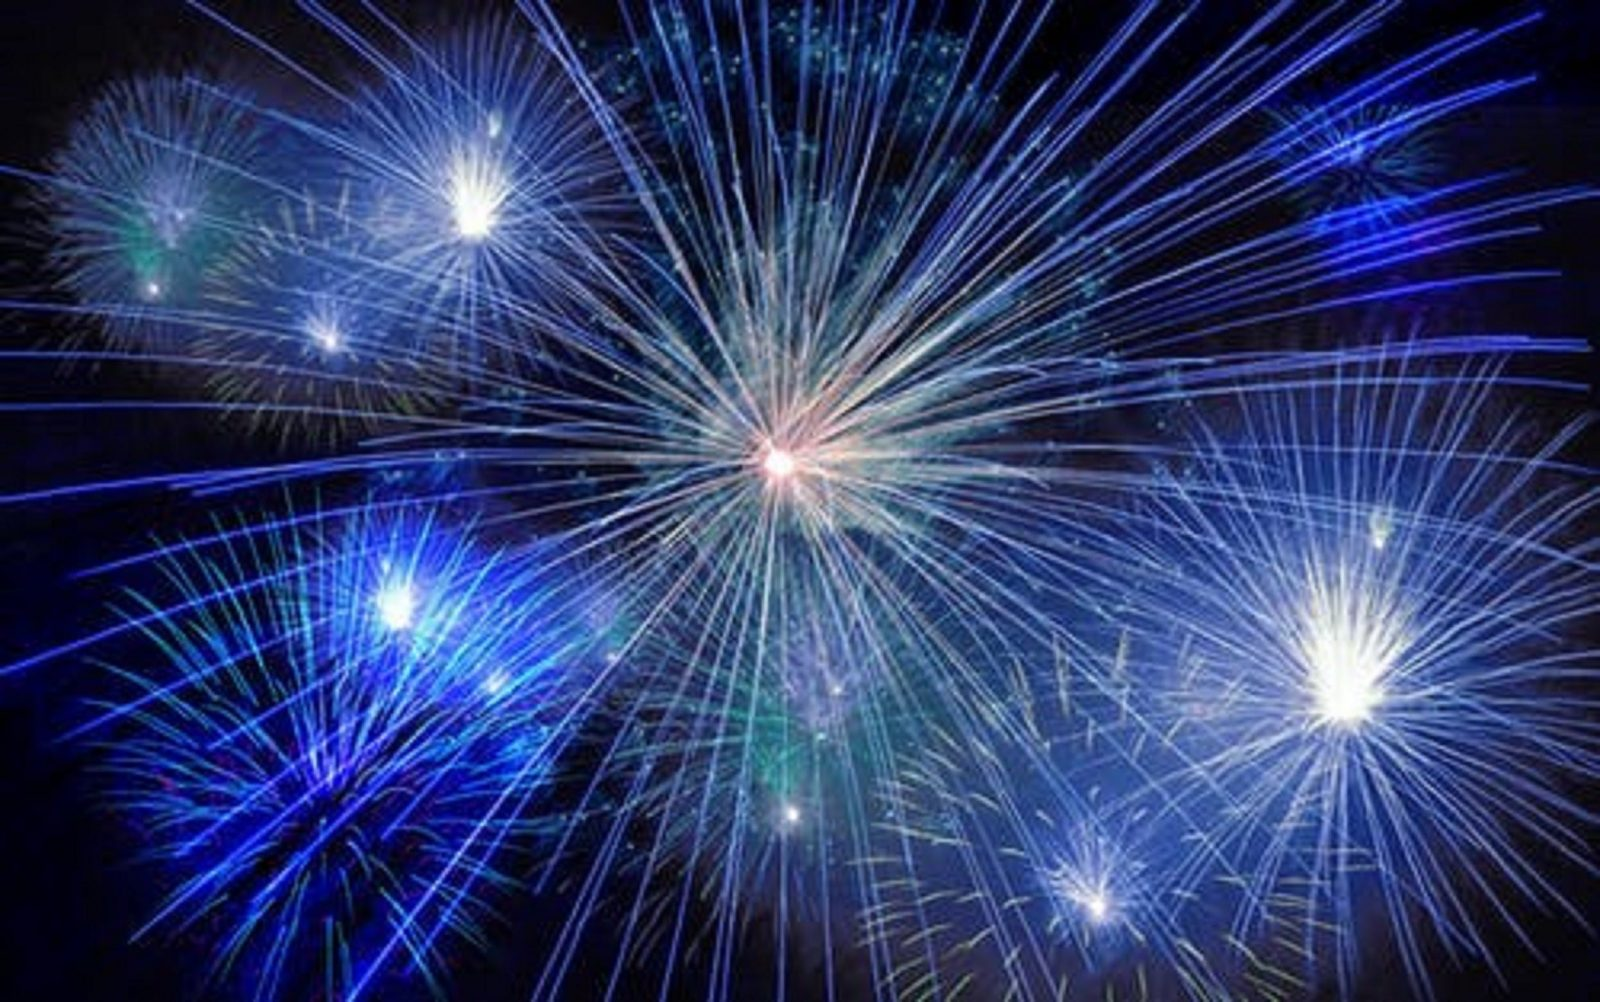 Picture of blue star shaped fireworks